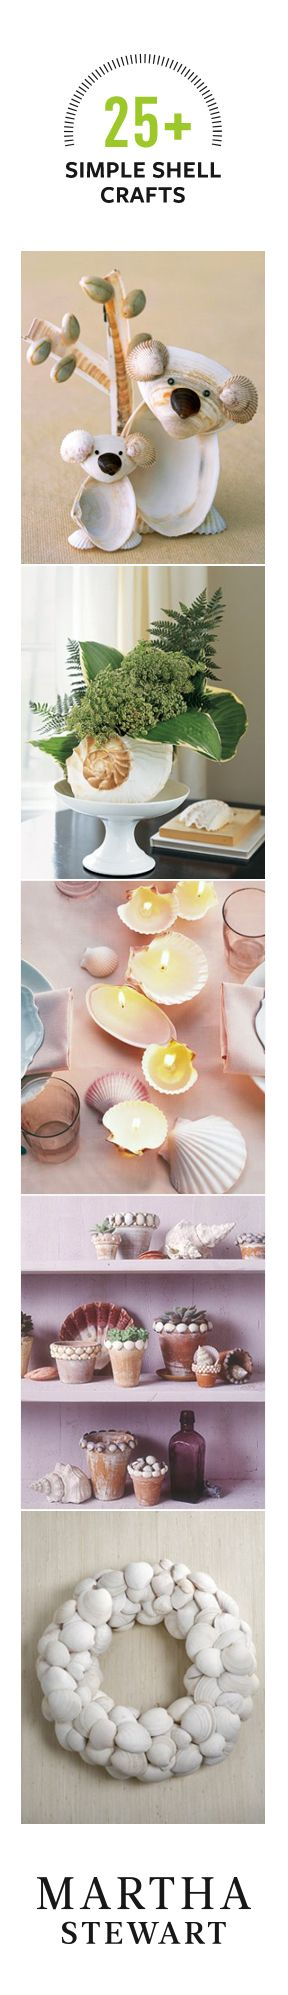 25+ Simple Crafts You Can Make With Shells